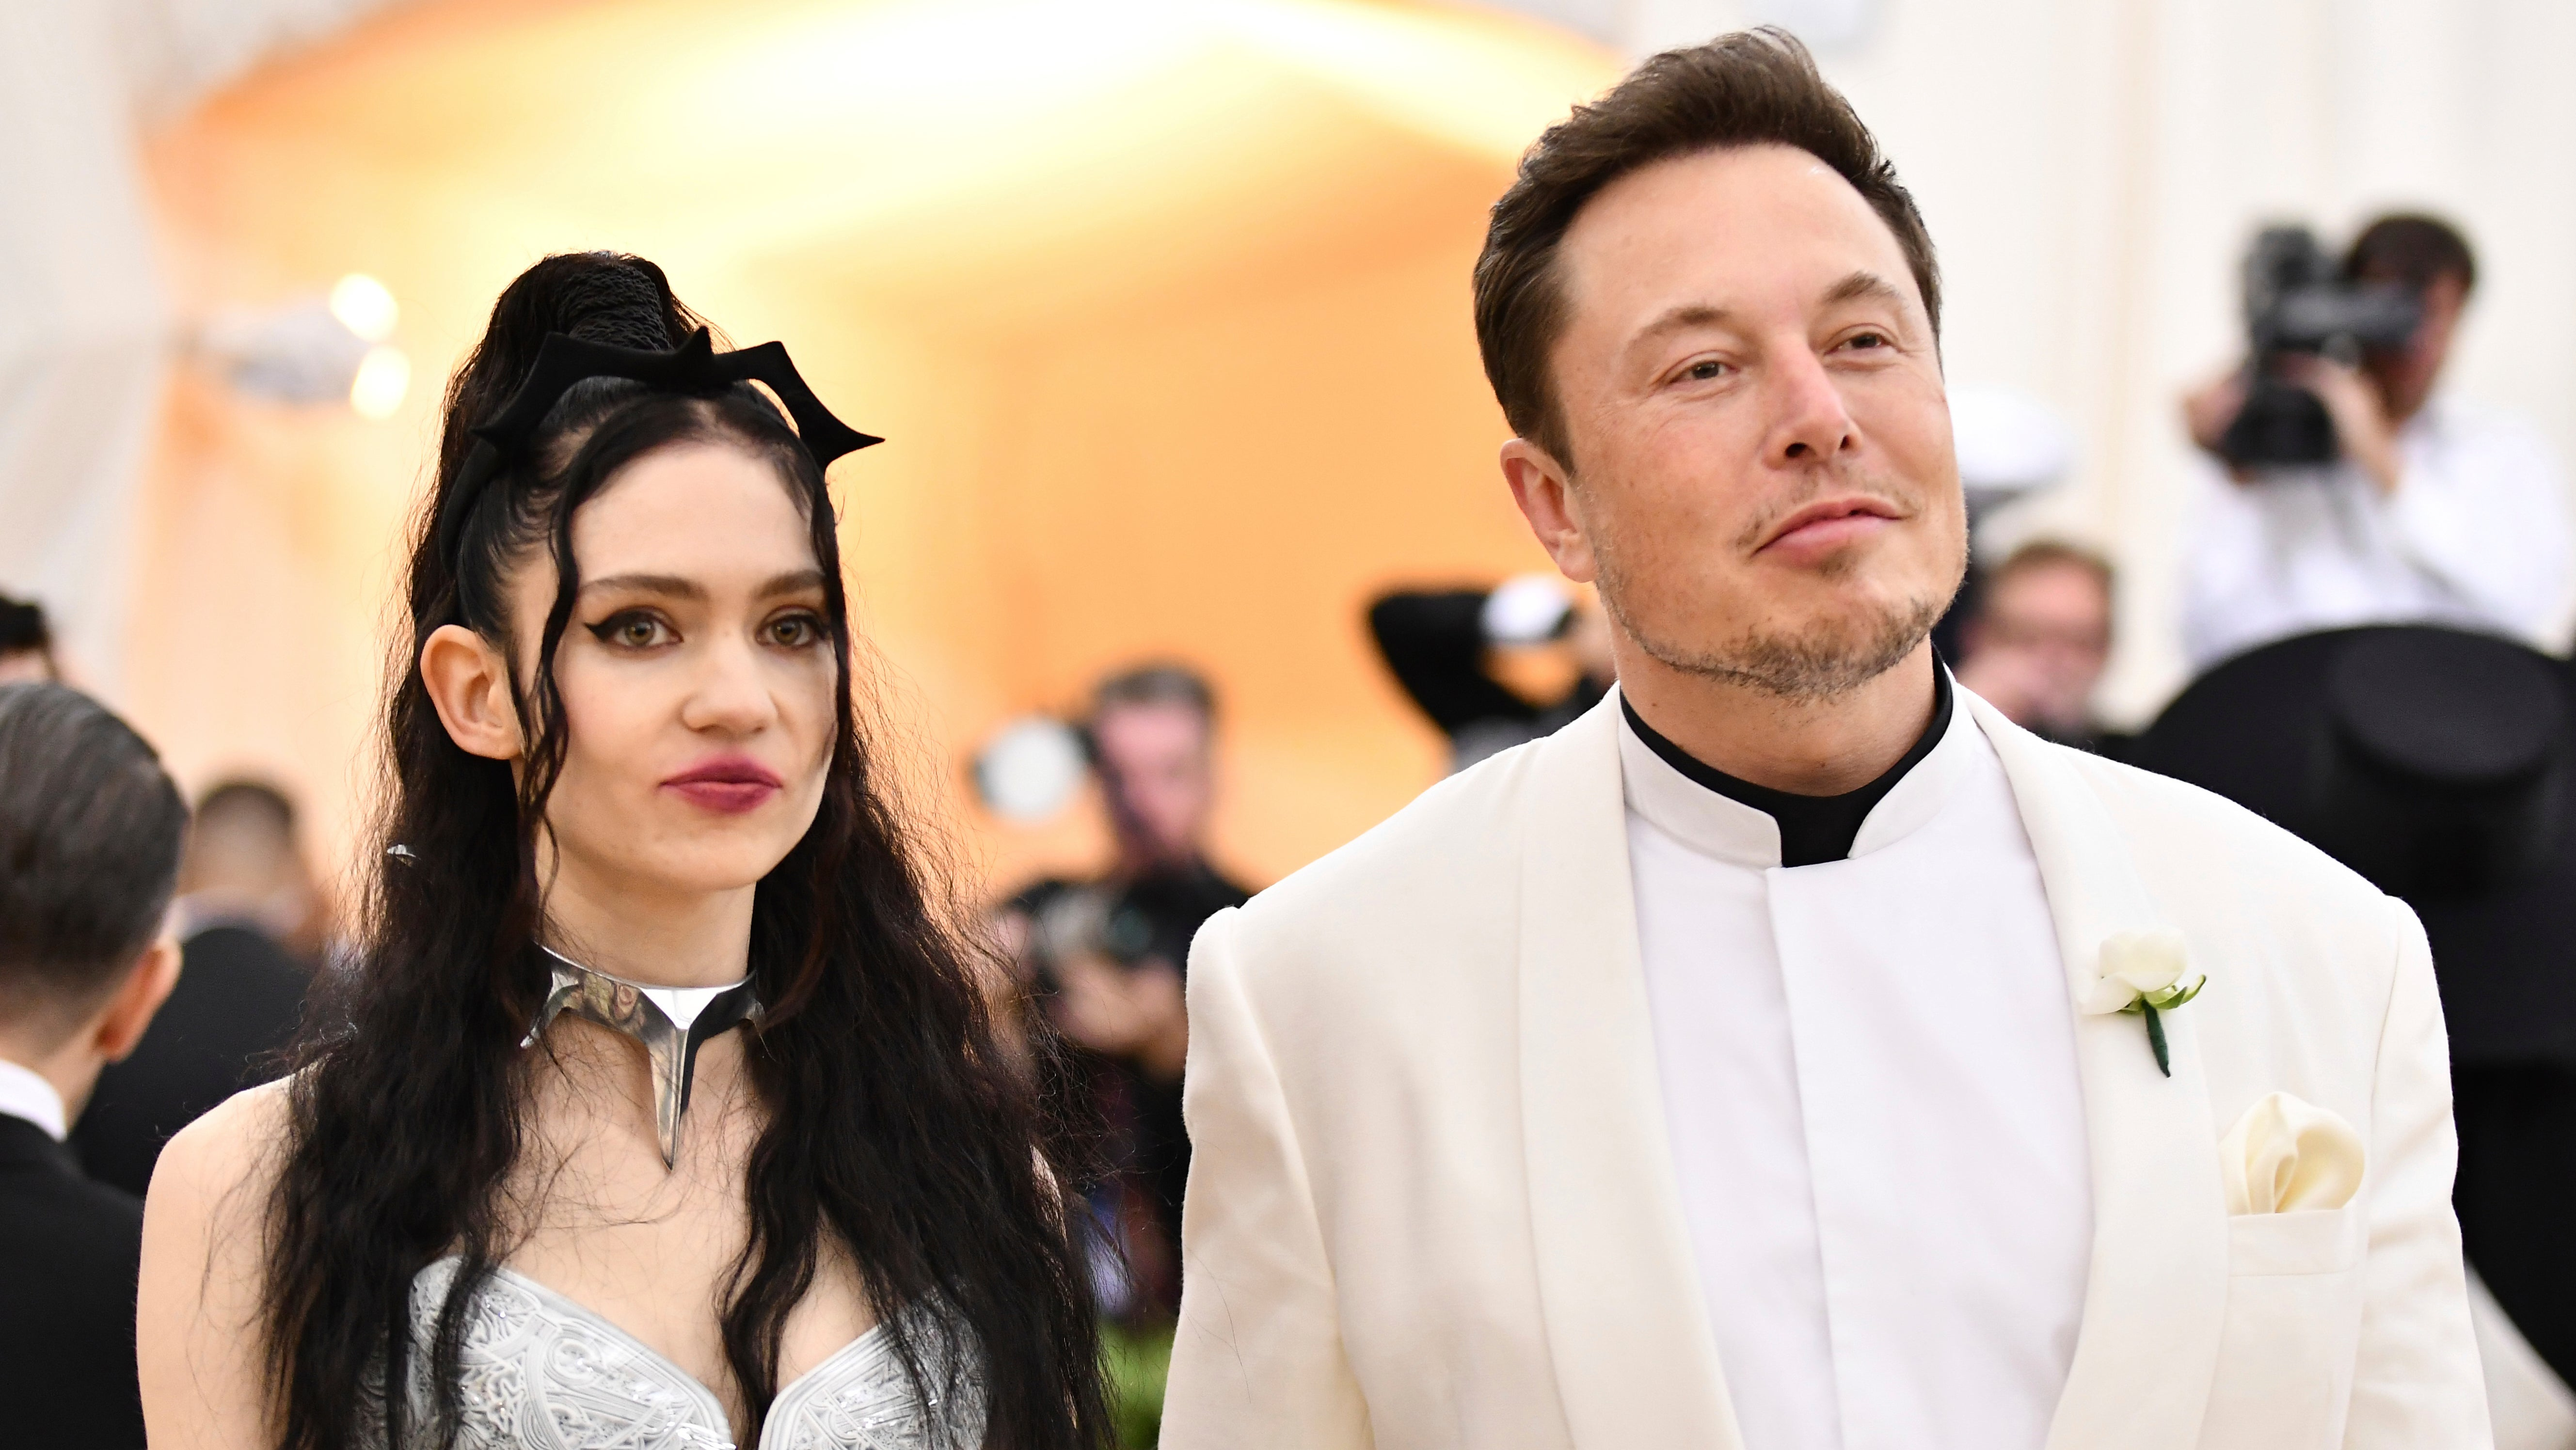 chances-thrown elon-musk fragile-lives grimes hard-to-see longing-for-what-used-to-be nothings-free shattered-dreams still-its-hard